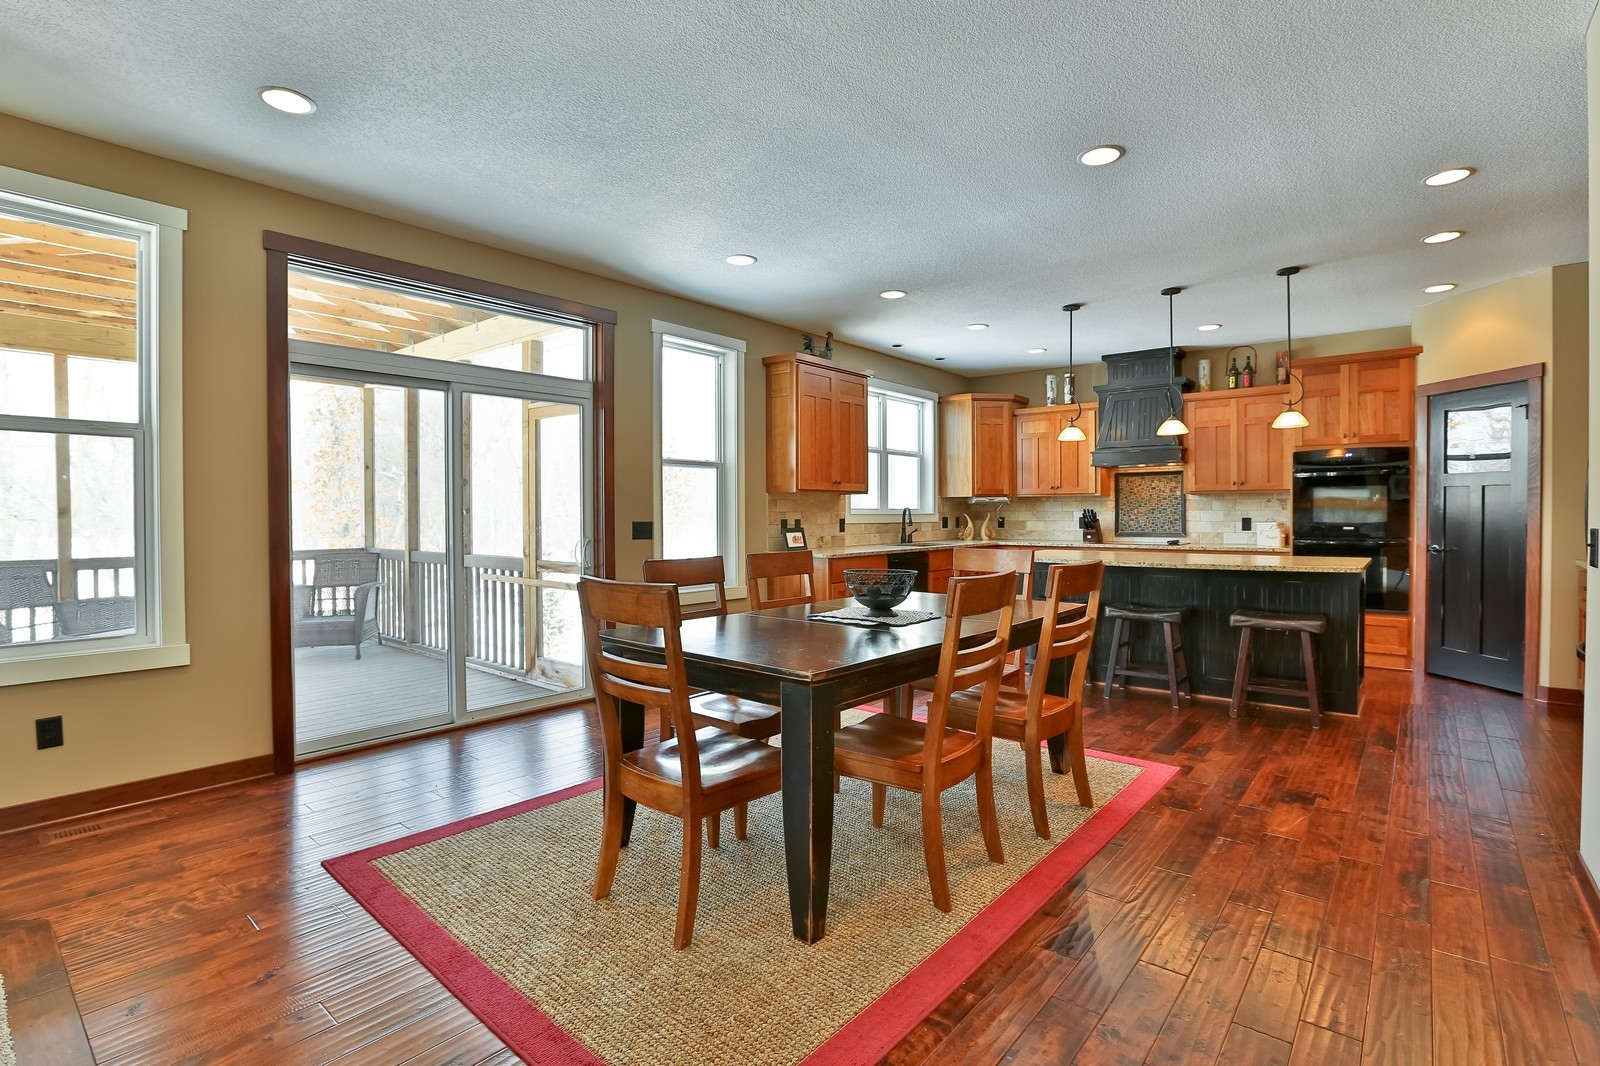 Real Estate Photography - 859 Fox Rd, Lino Lakes, MN, 55014 - Dining Room